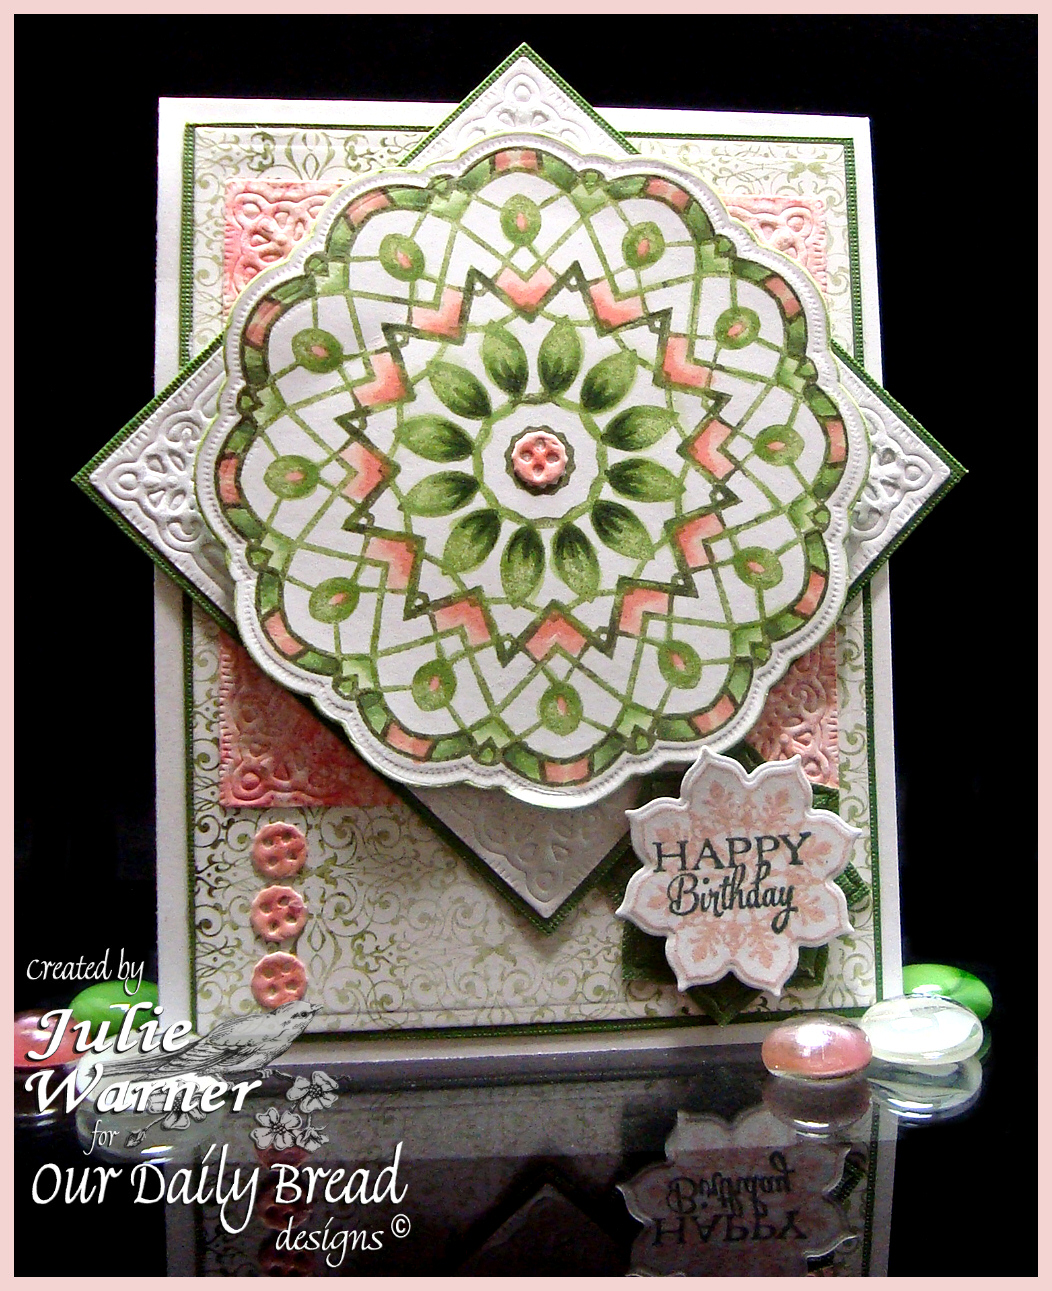 Stamps - Our Daily Bread Designs Doily Blessings, Birthday Doily, Ornate Borders and Flowers, ODBD Custom Doily Dies, ODBD Custom Ornate Flowers & Borders Die